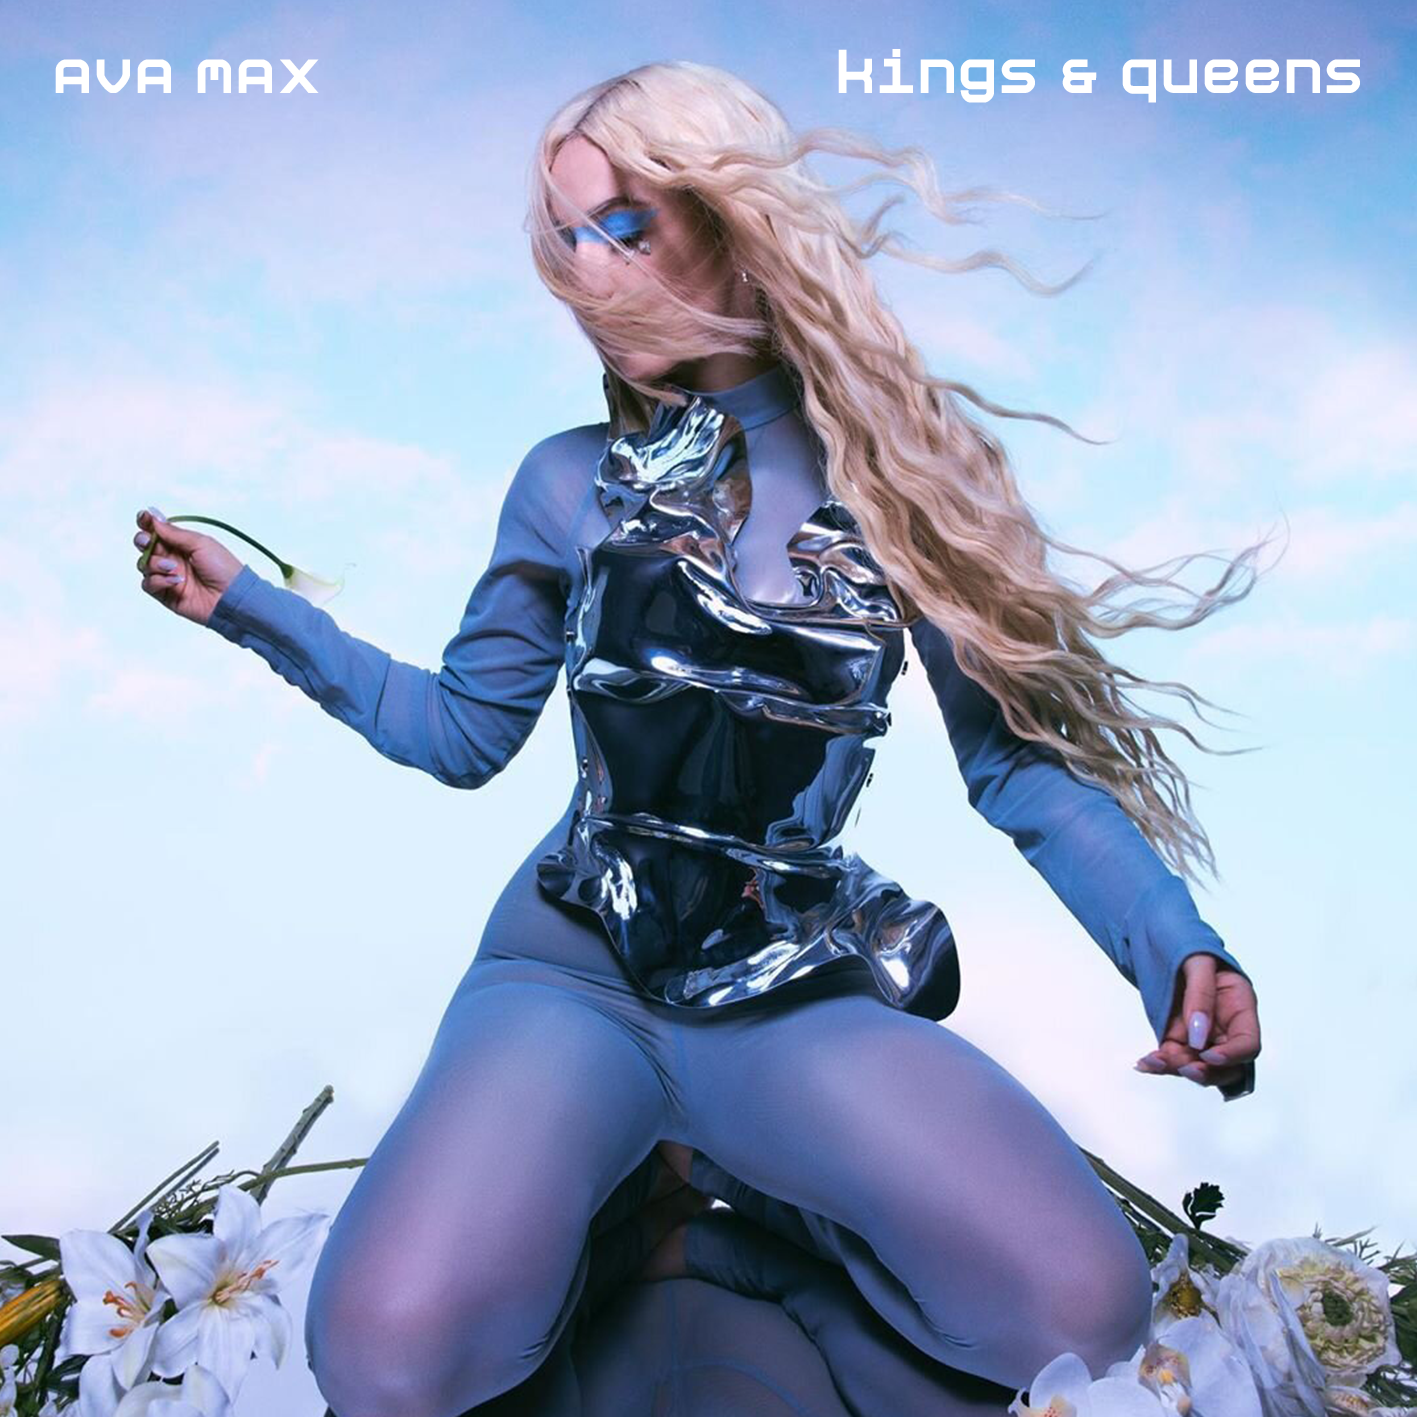 MOONCHILD-SERIES-ava-max-kings-queens.pn